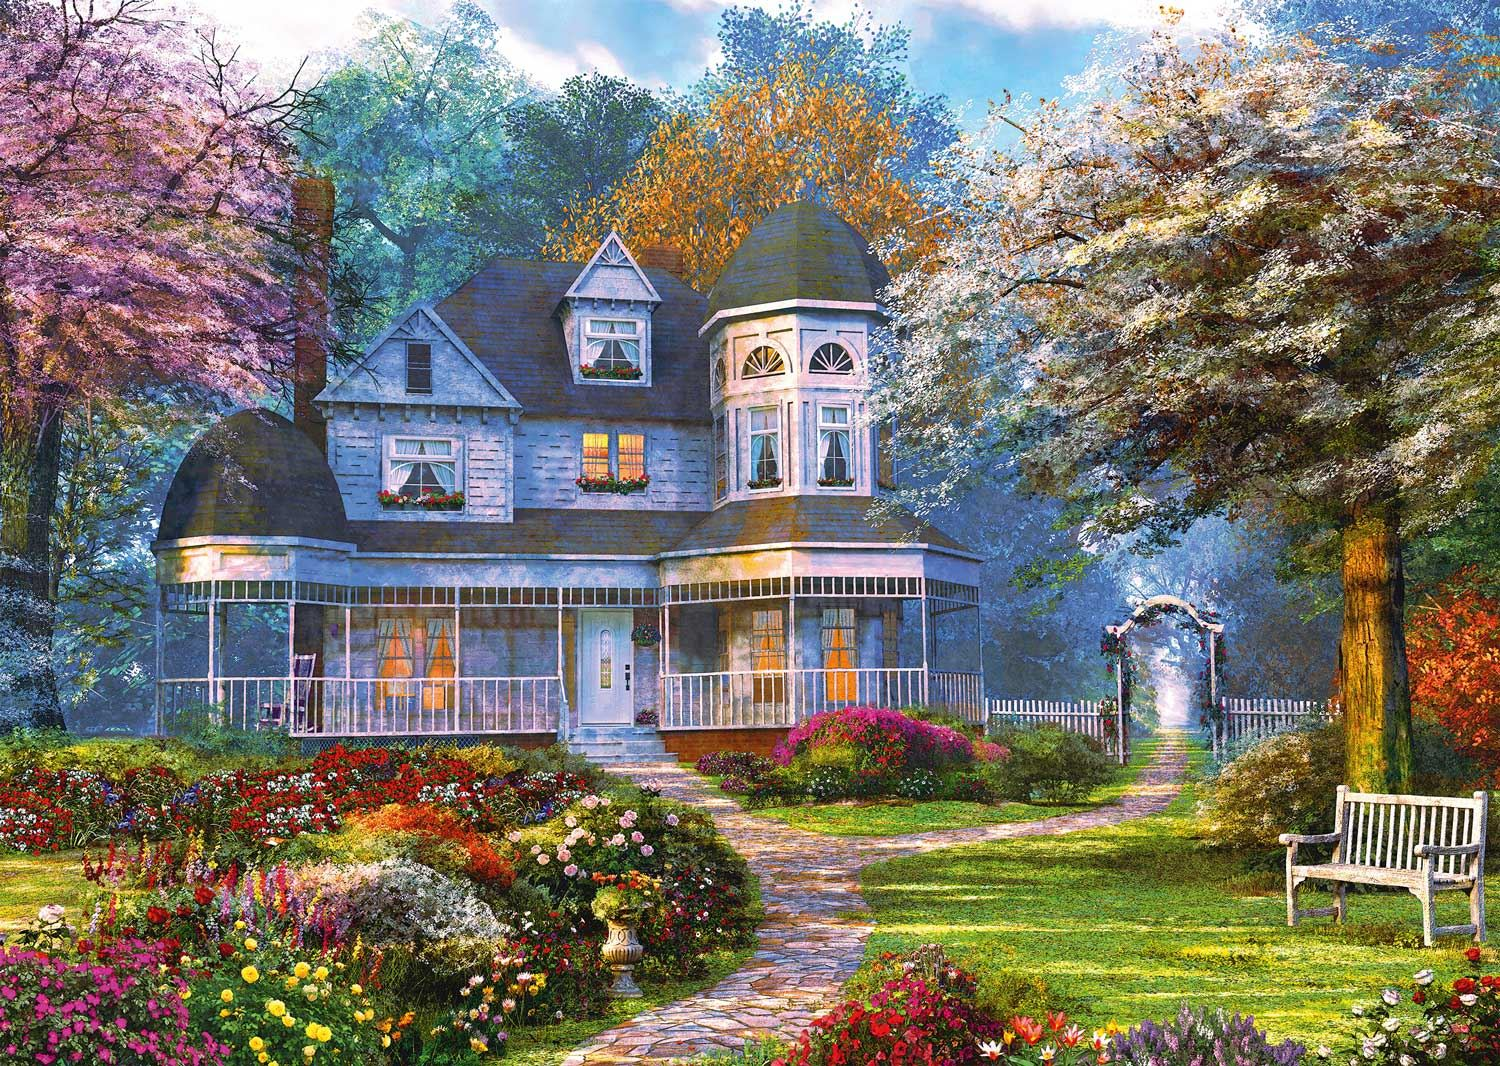 Schmidt Dominic Davison Victorian Mansion Jigsaw Puzzle (1000 pieces)